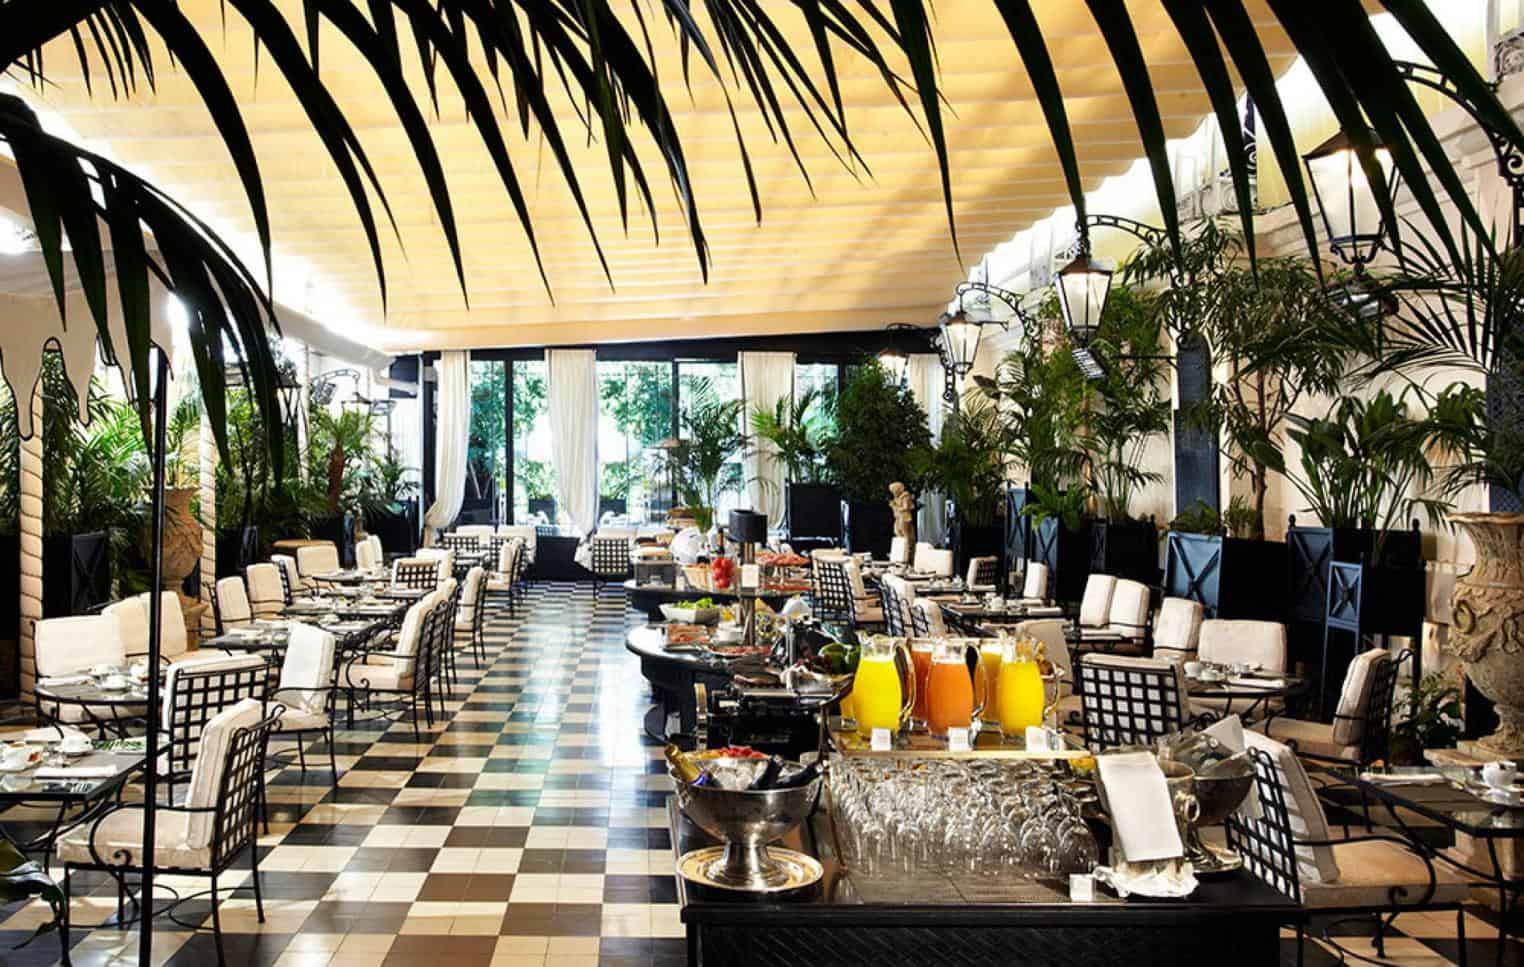 El Palace Hotel Barcelona 5 Stars Grand Luxury Garden 323 Travel Designers